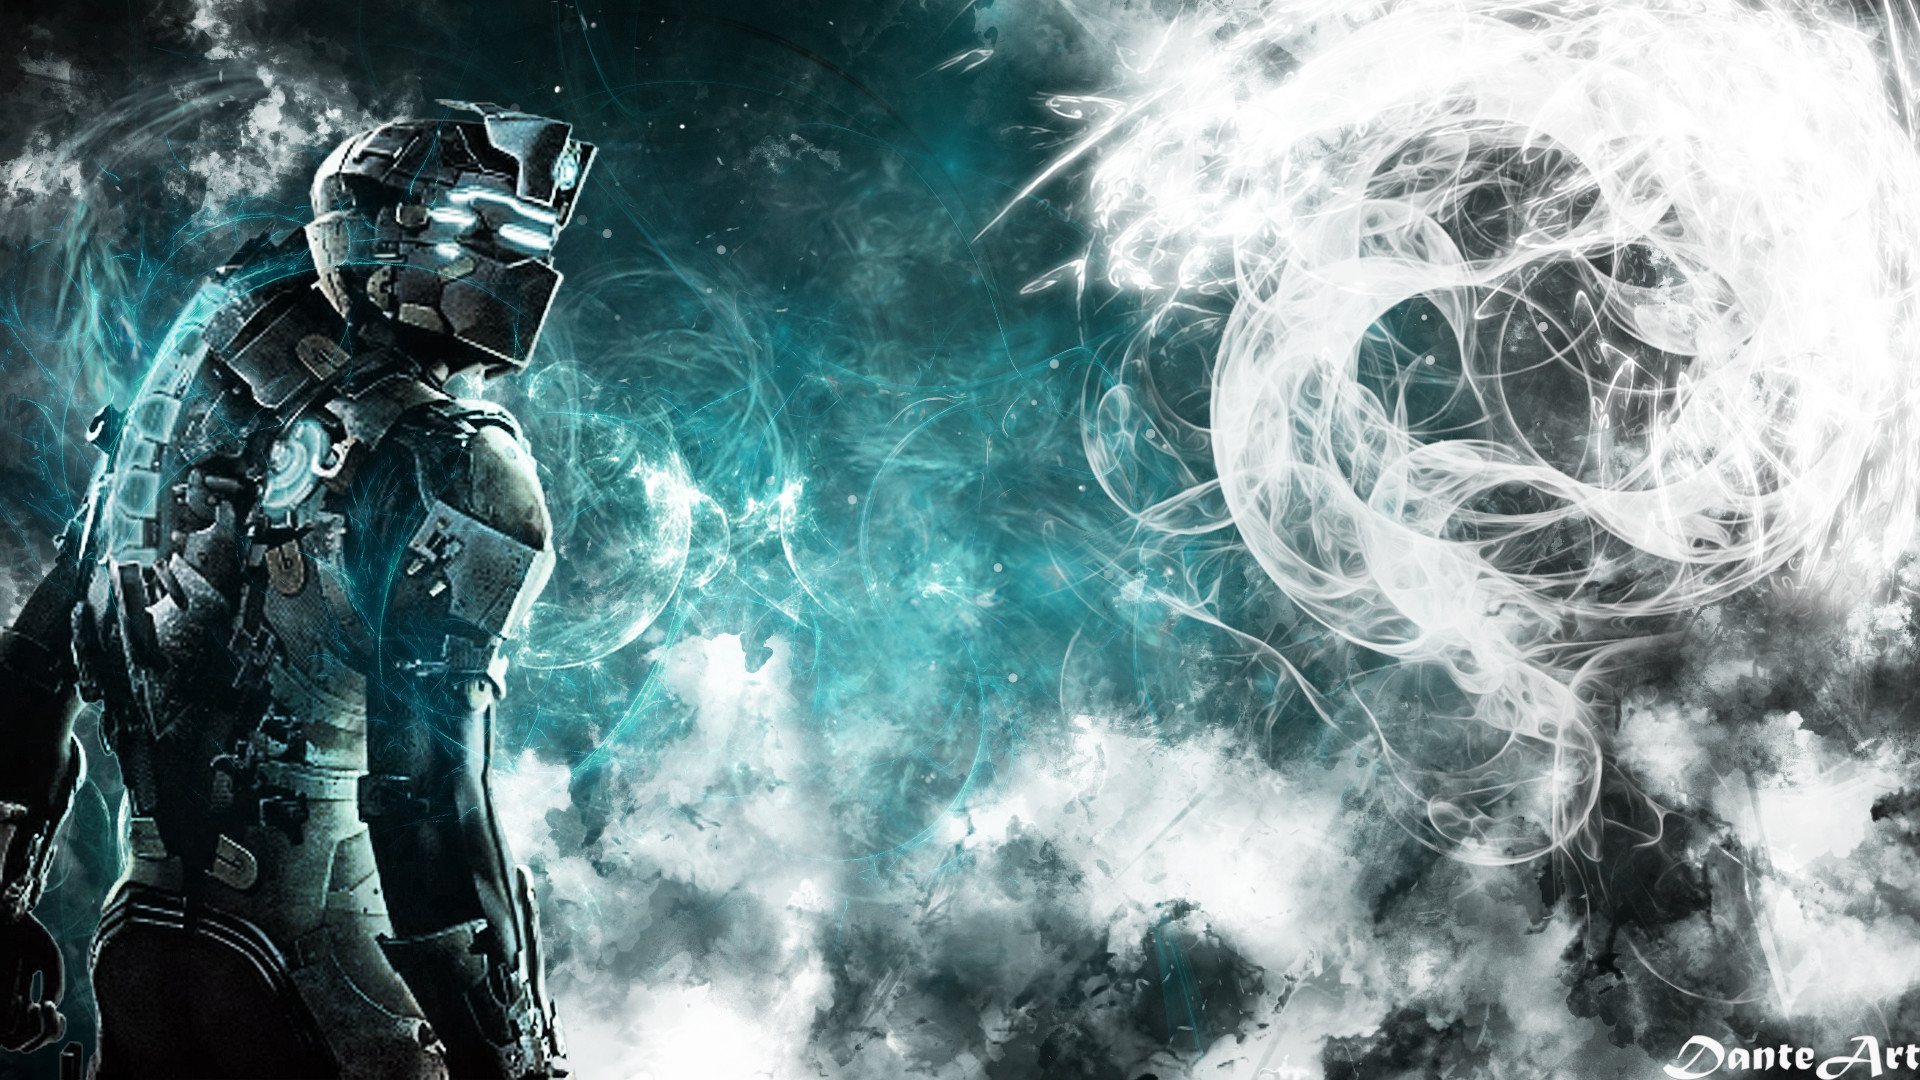 Res: 1920x1080, Dead Space HD Wallpapers 9 - 1920 X 1080